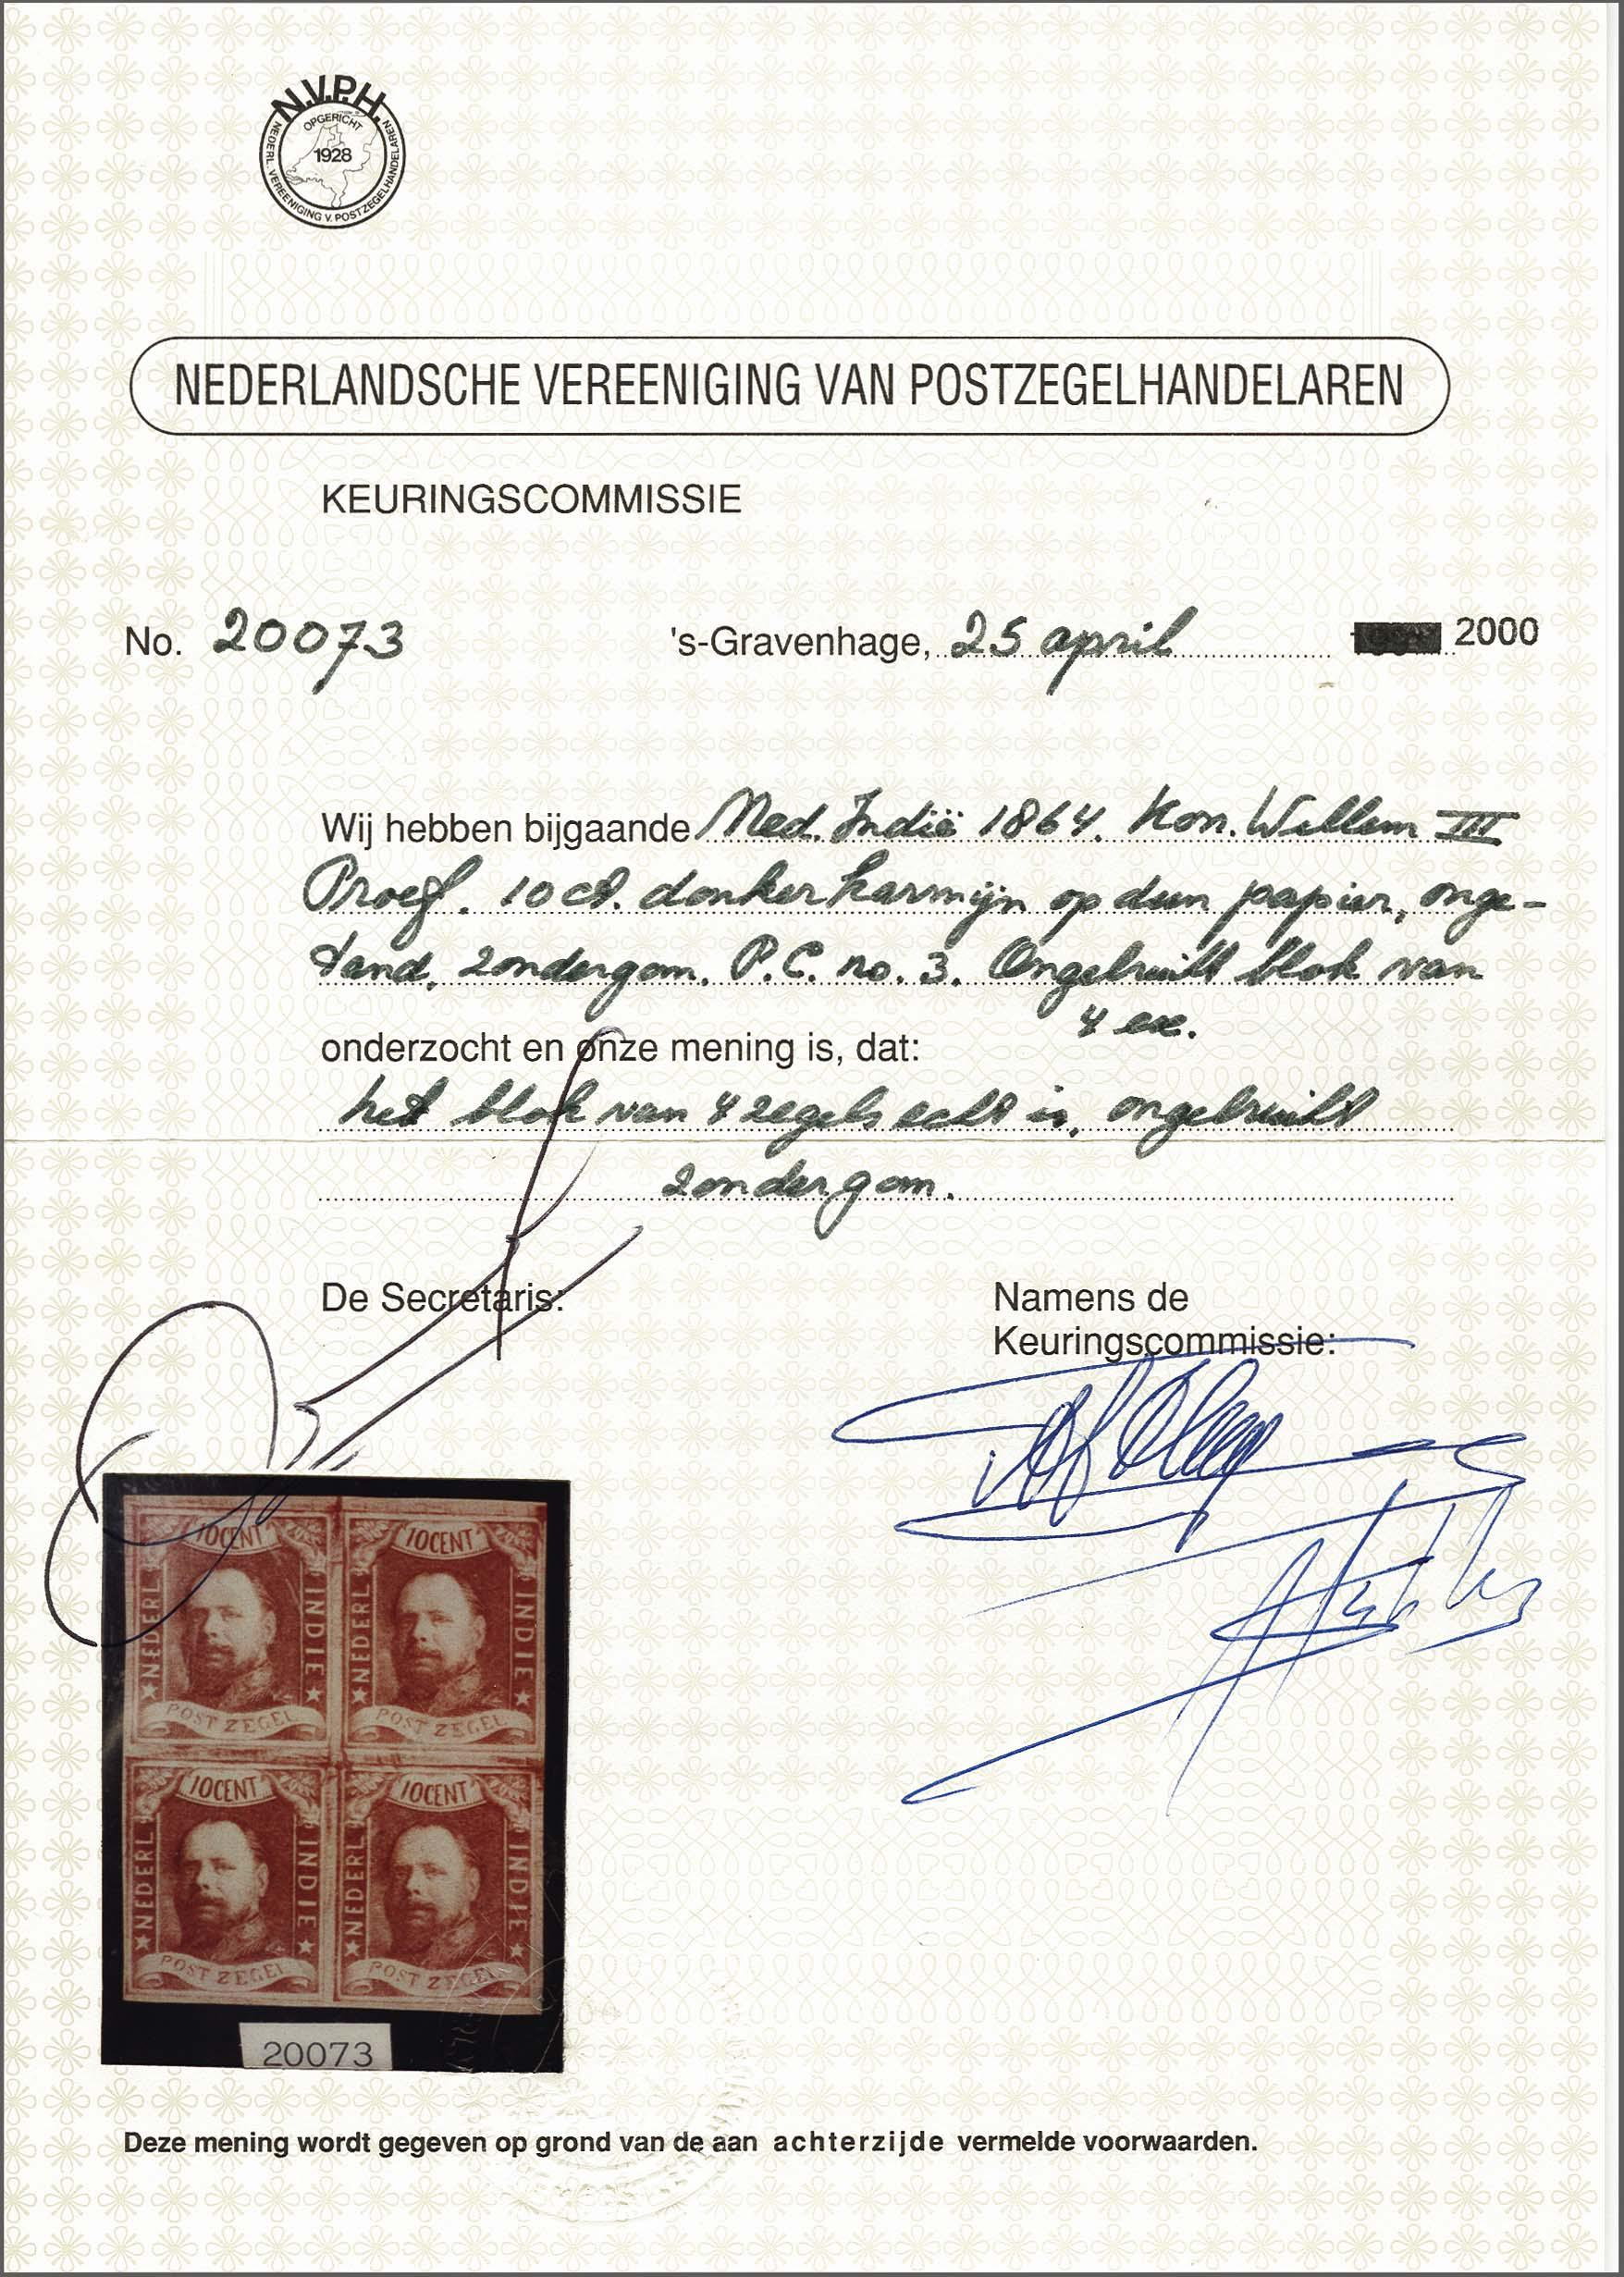 Lot 3300 - Netherlands and former colonies Netherlands Indies -  Corinphila Veilingen Auction 250-253 - Day 4 - Proofs of Netherlands former colonies